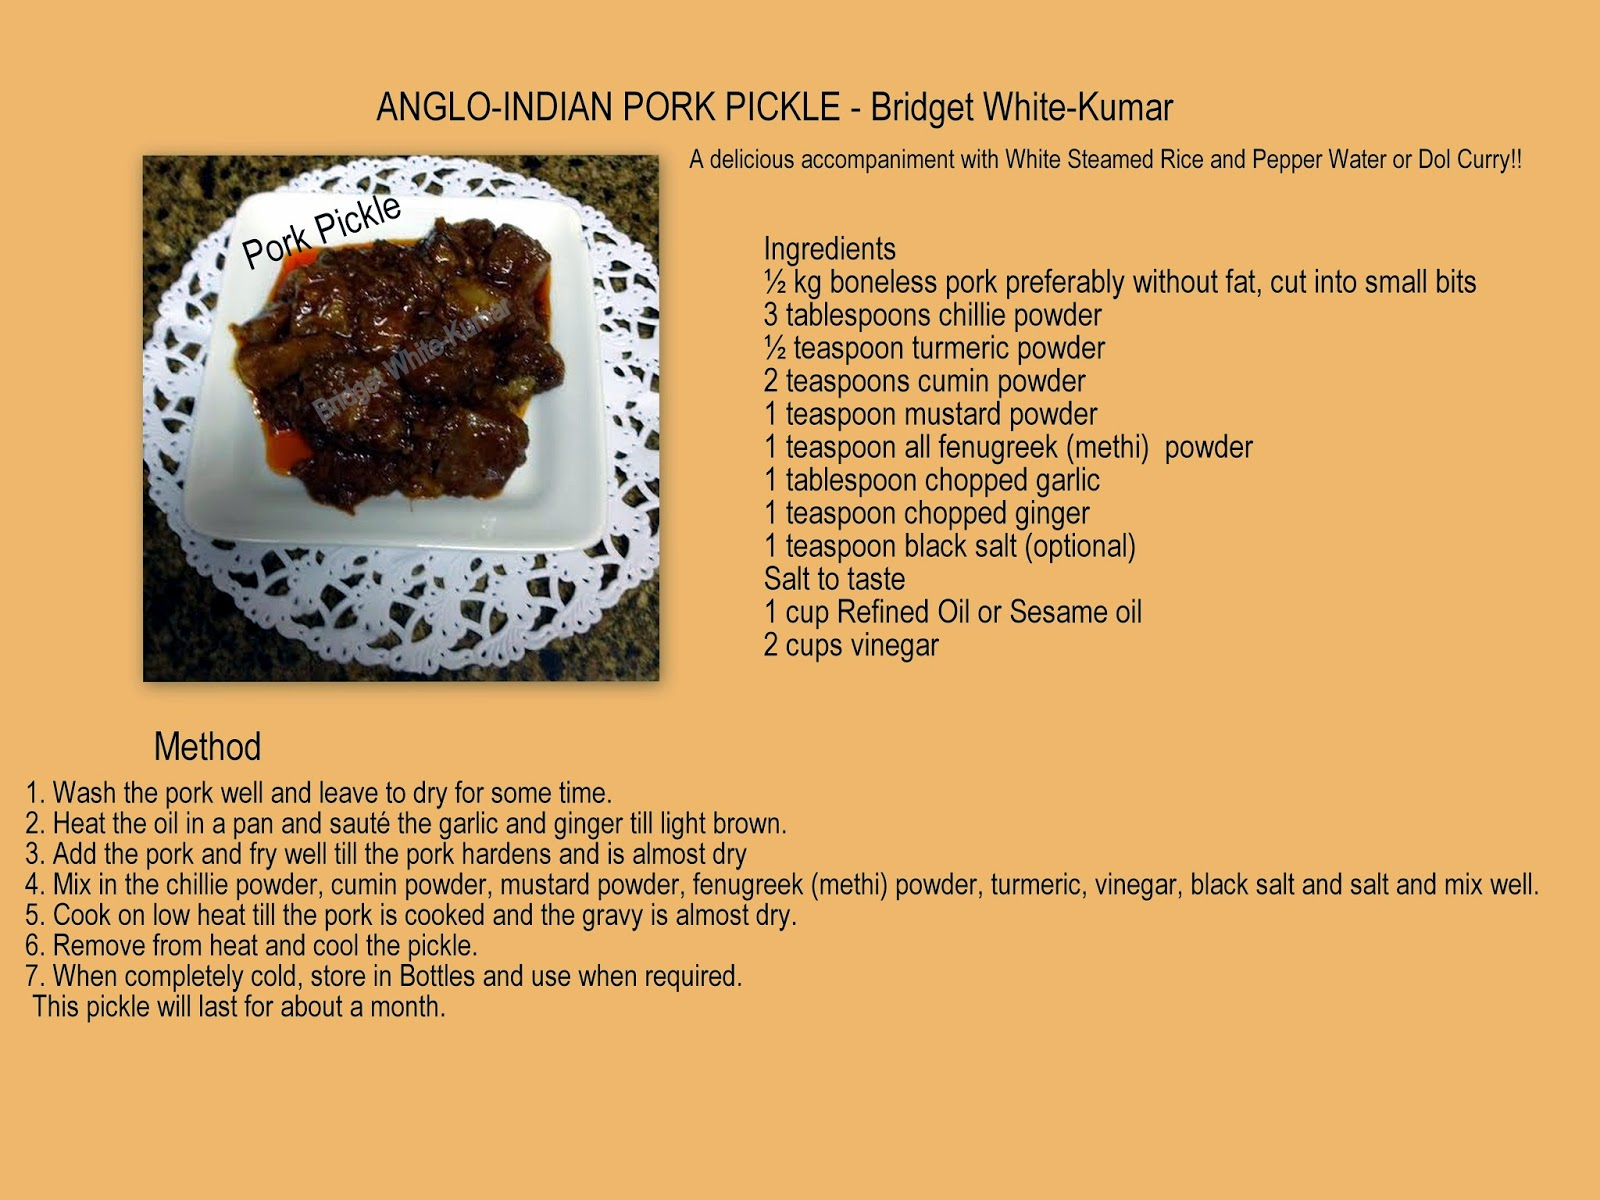 Anglo indian food by bridget white kumar anglo indian pork pickle a delicious accompaniment with white steamed rice and pepper water or dol curry forumfinder Choice Image